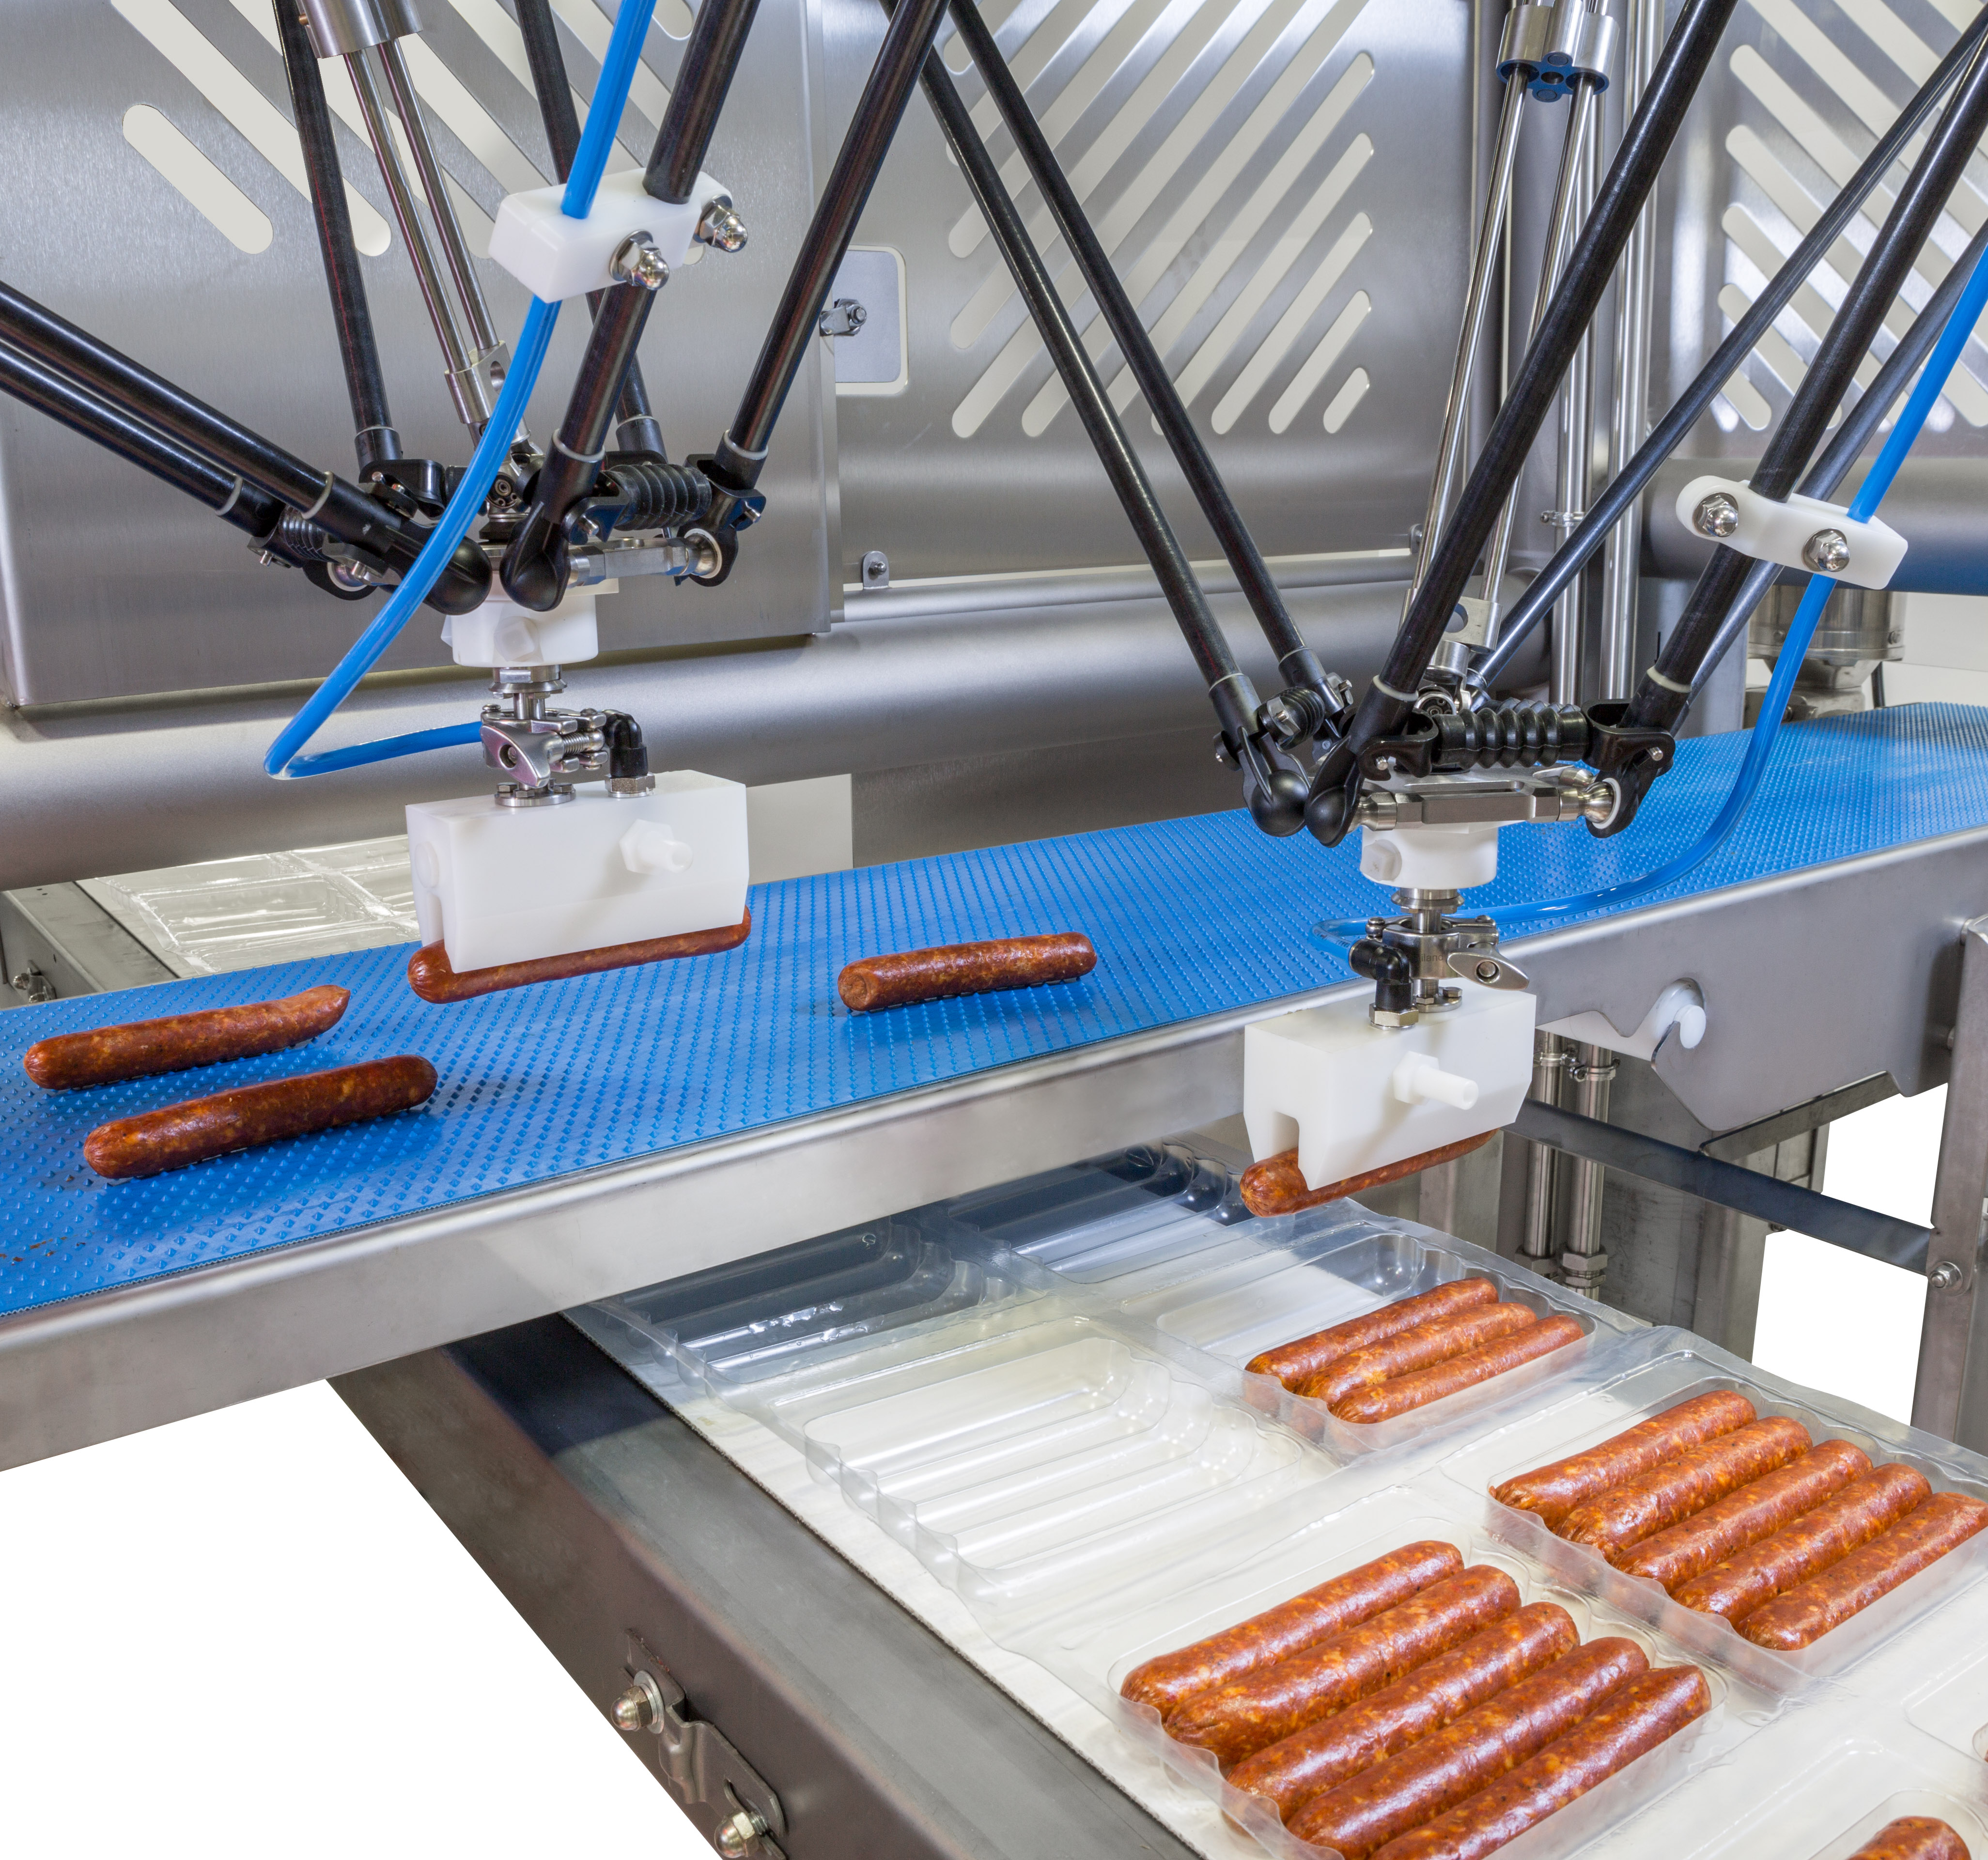 Pick and Place of Robots and Tray Packing Equipment